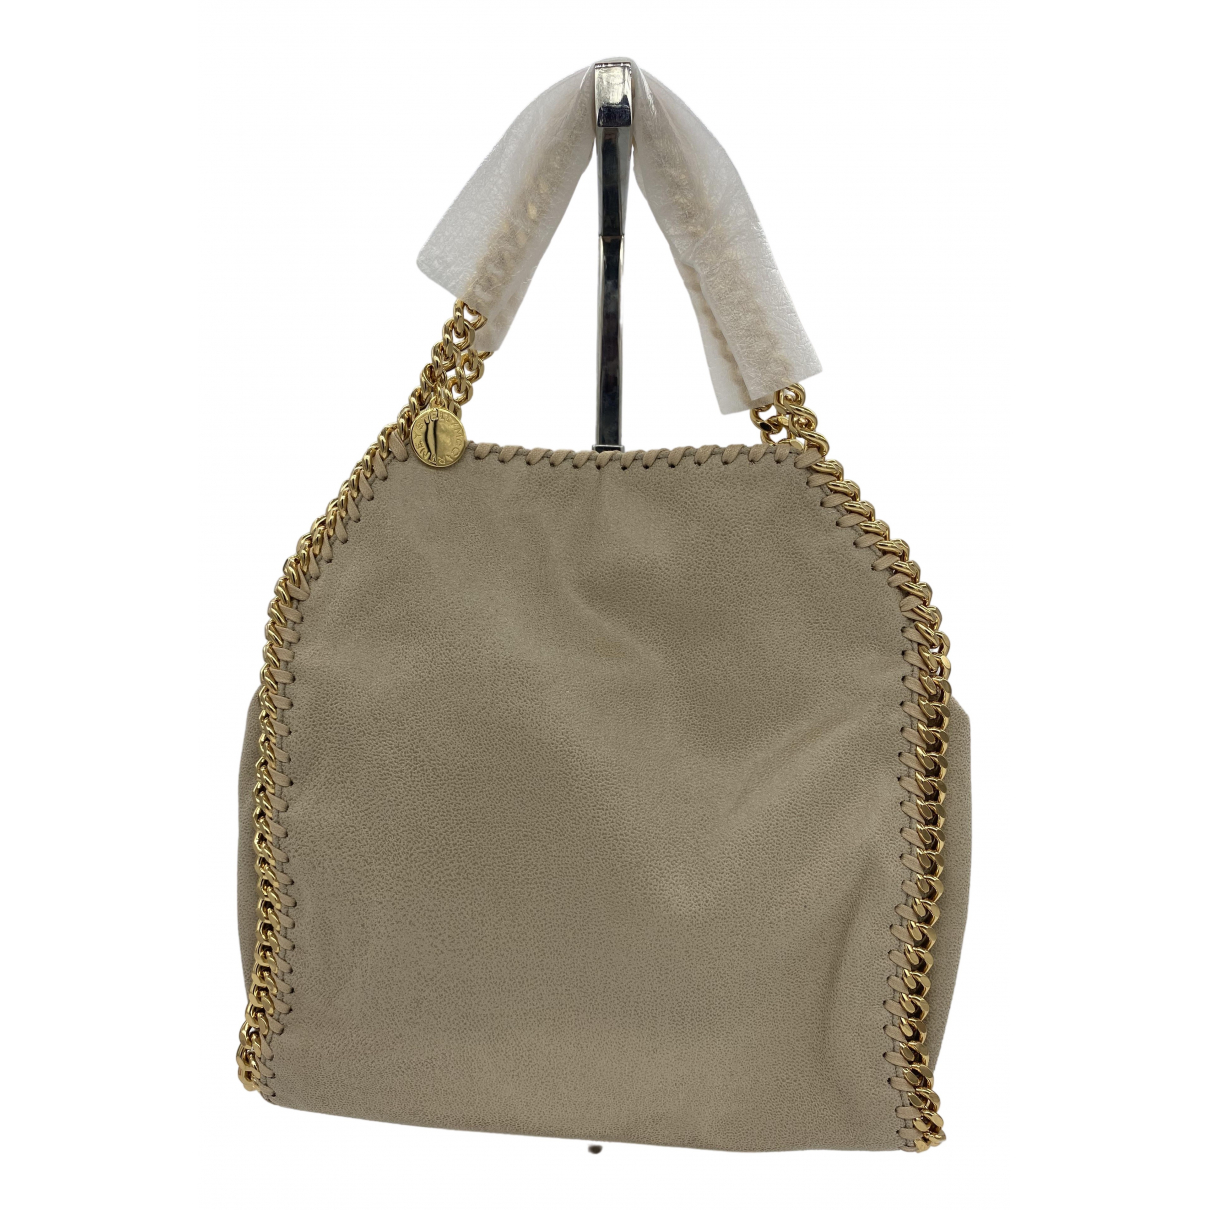 Stella Mccartney Falabella Beige Cloth handbag for Women N